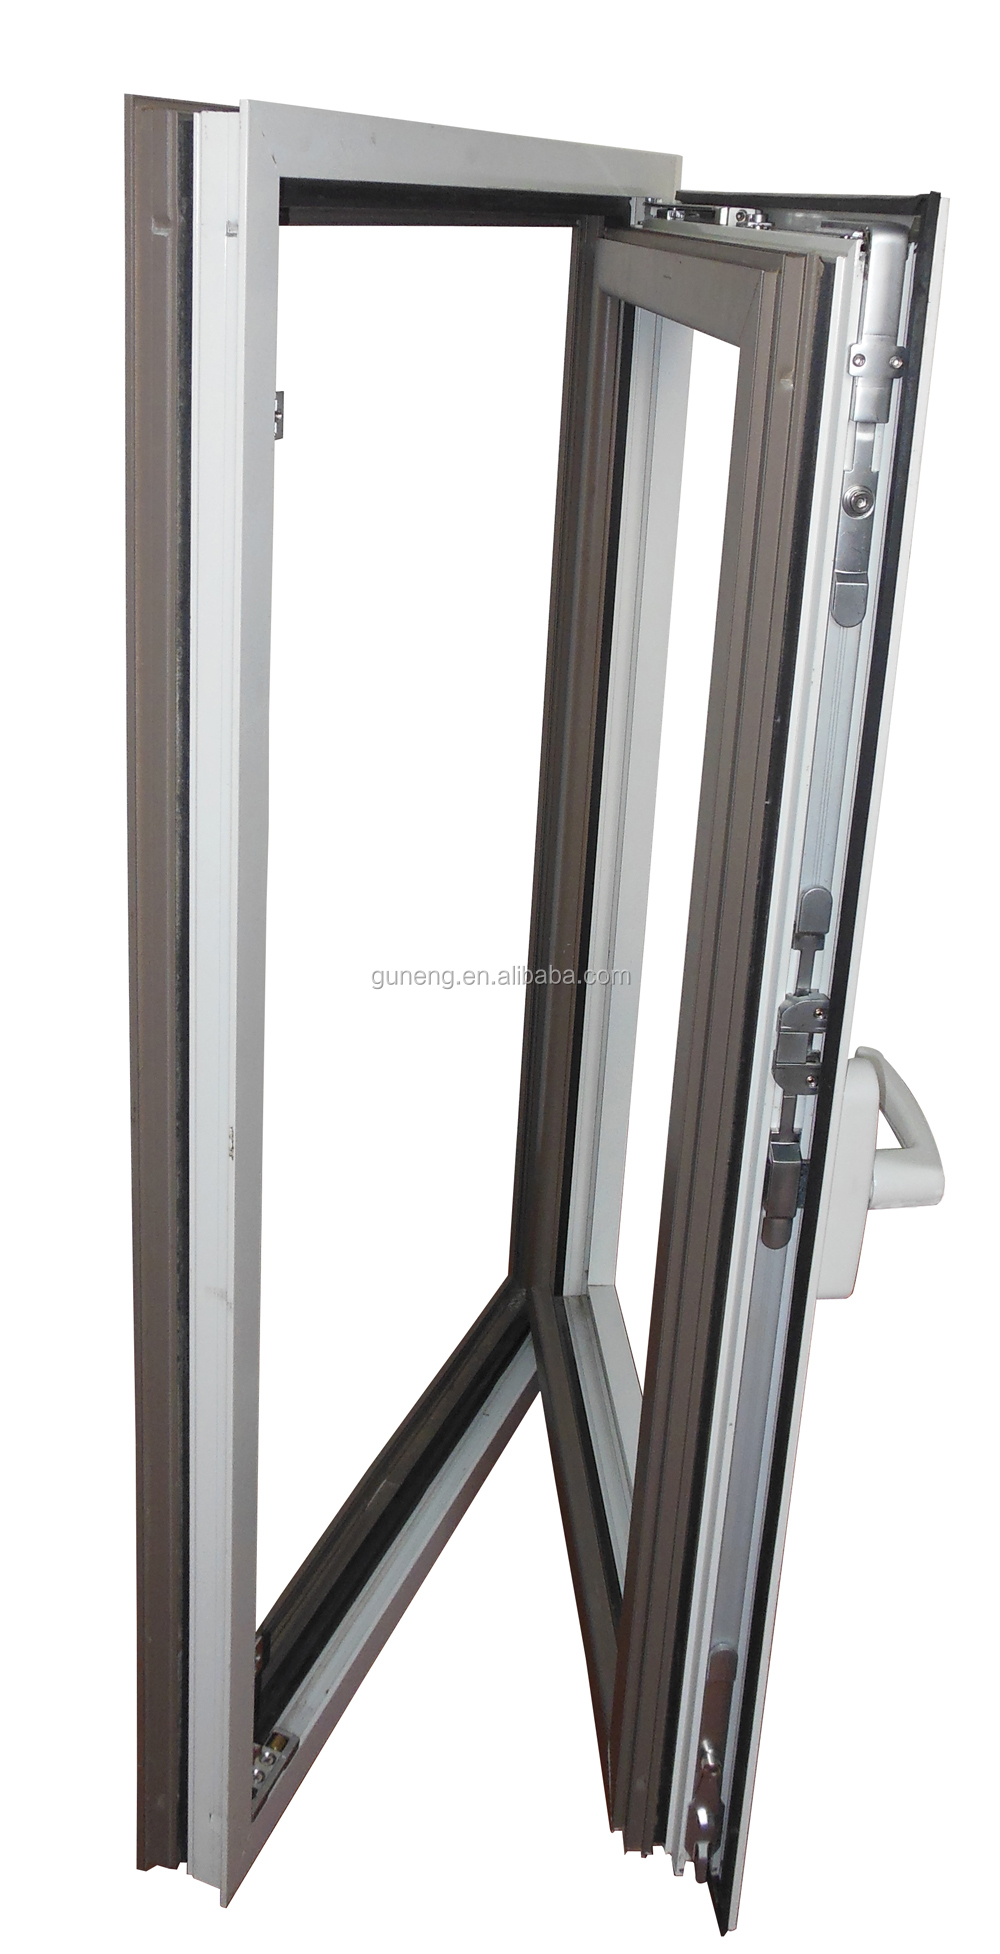 Tilt Turn Window Hardware : Aluminum window tilt and turn hinges